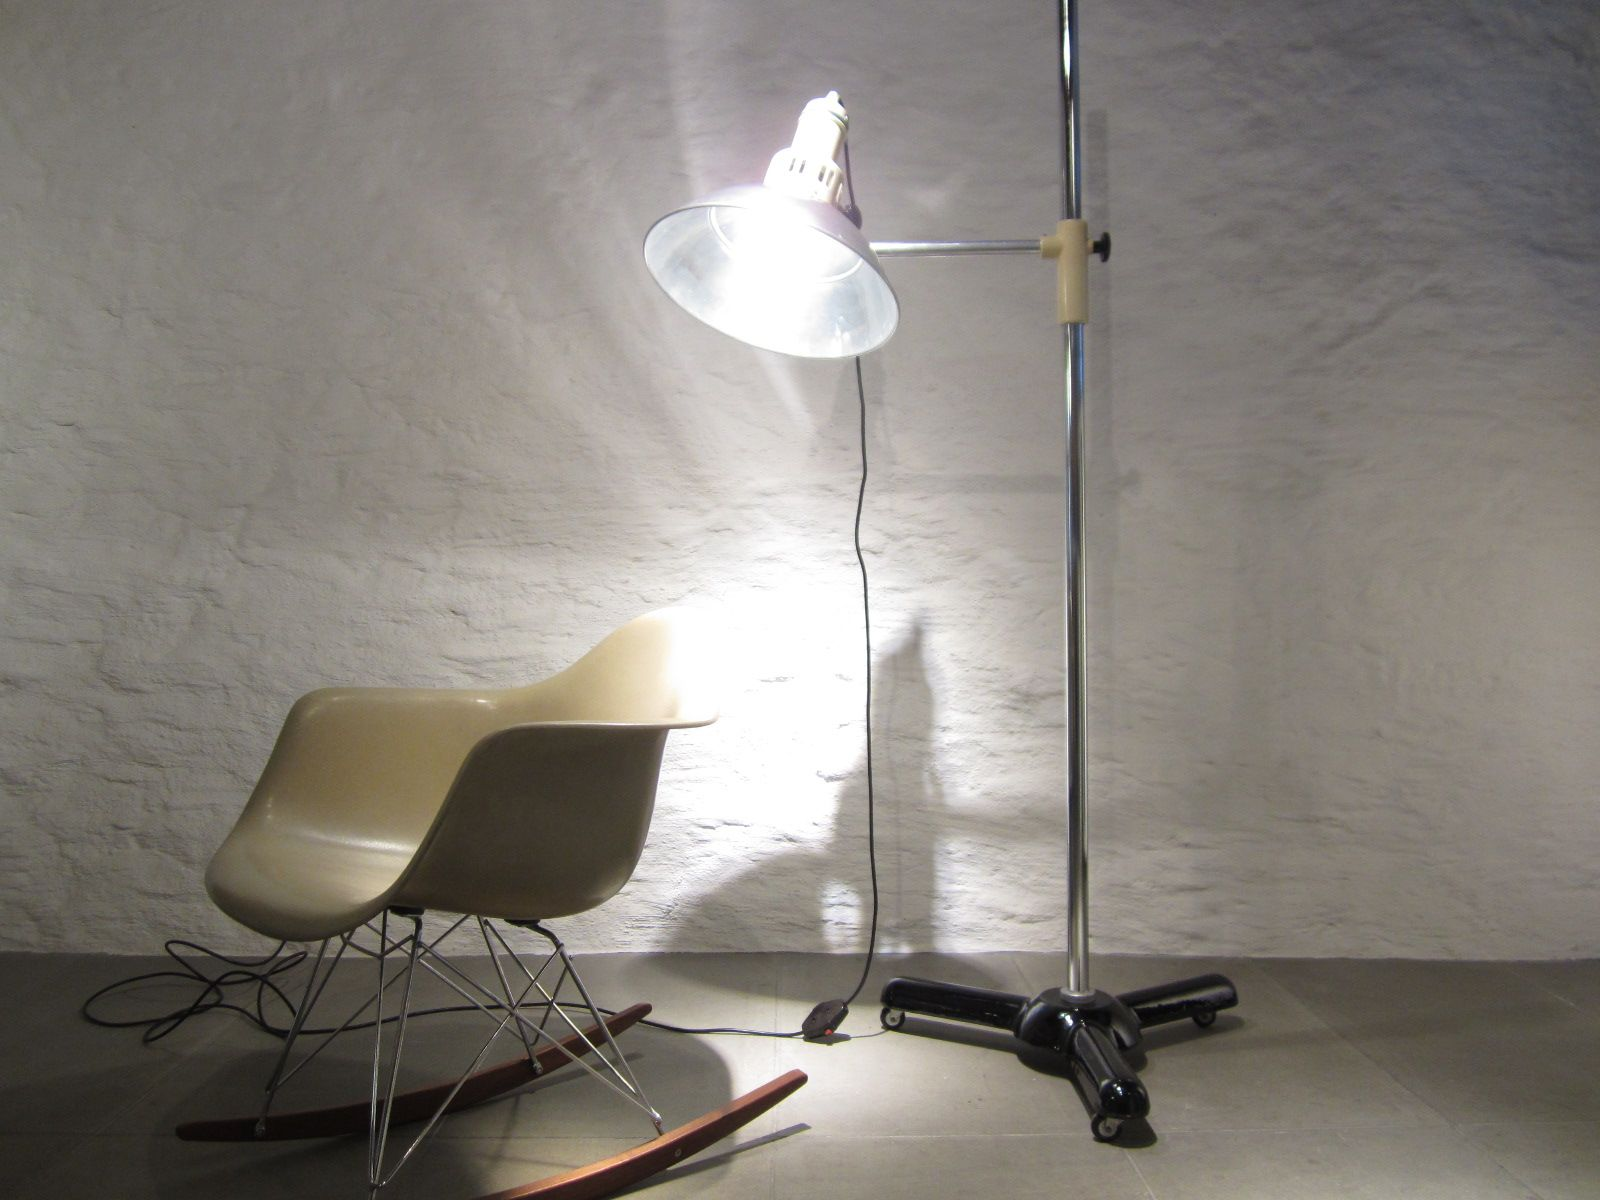 Large Vintage Former Medical Floor Lamp From Calorex 3. Previous